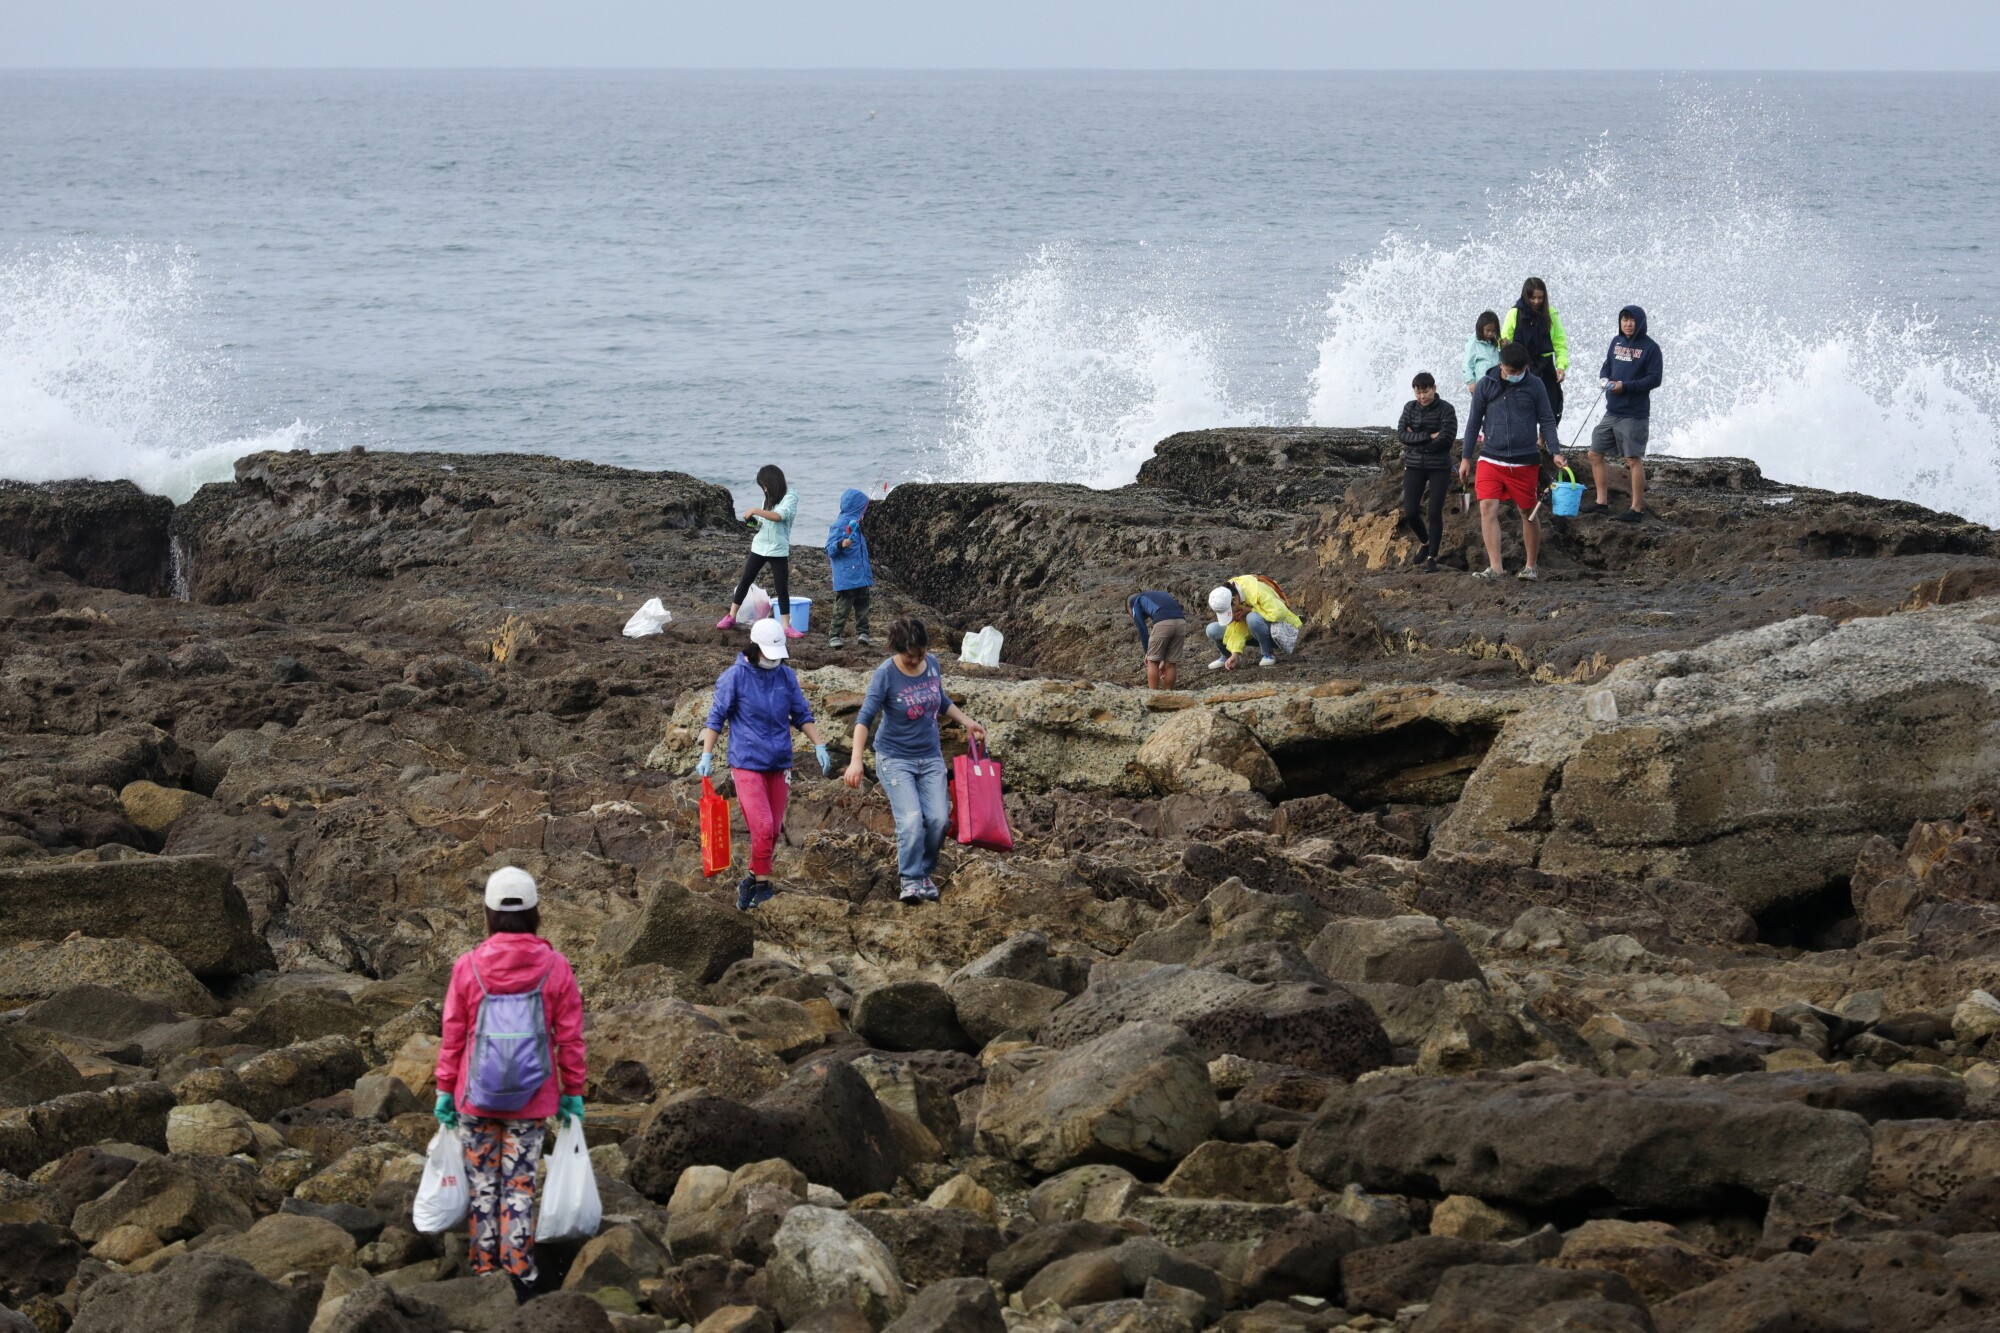 People scour the tide pools in San Pedro.